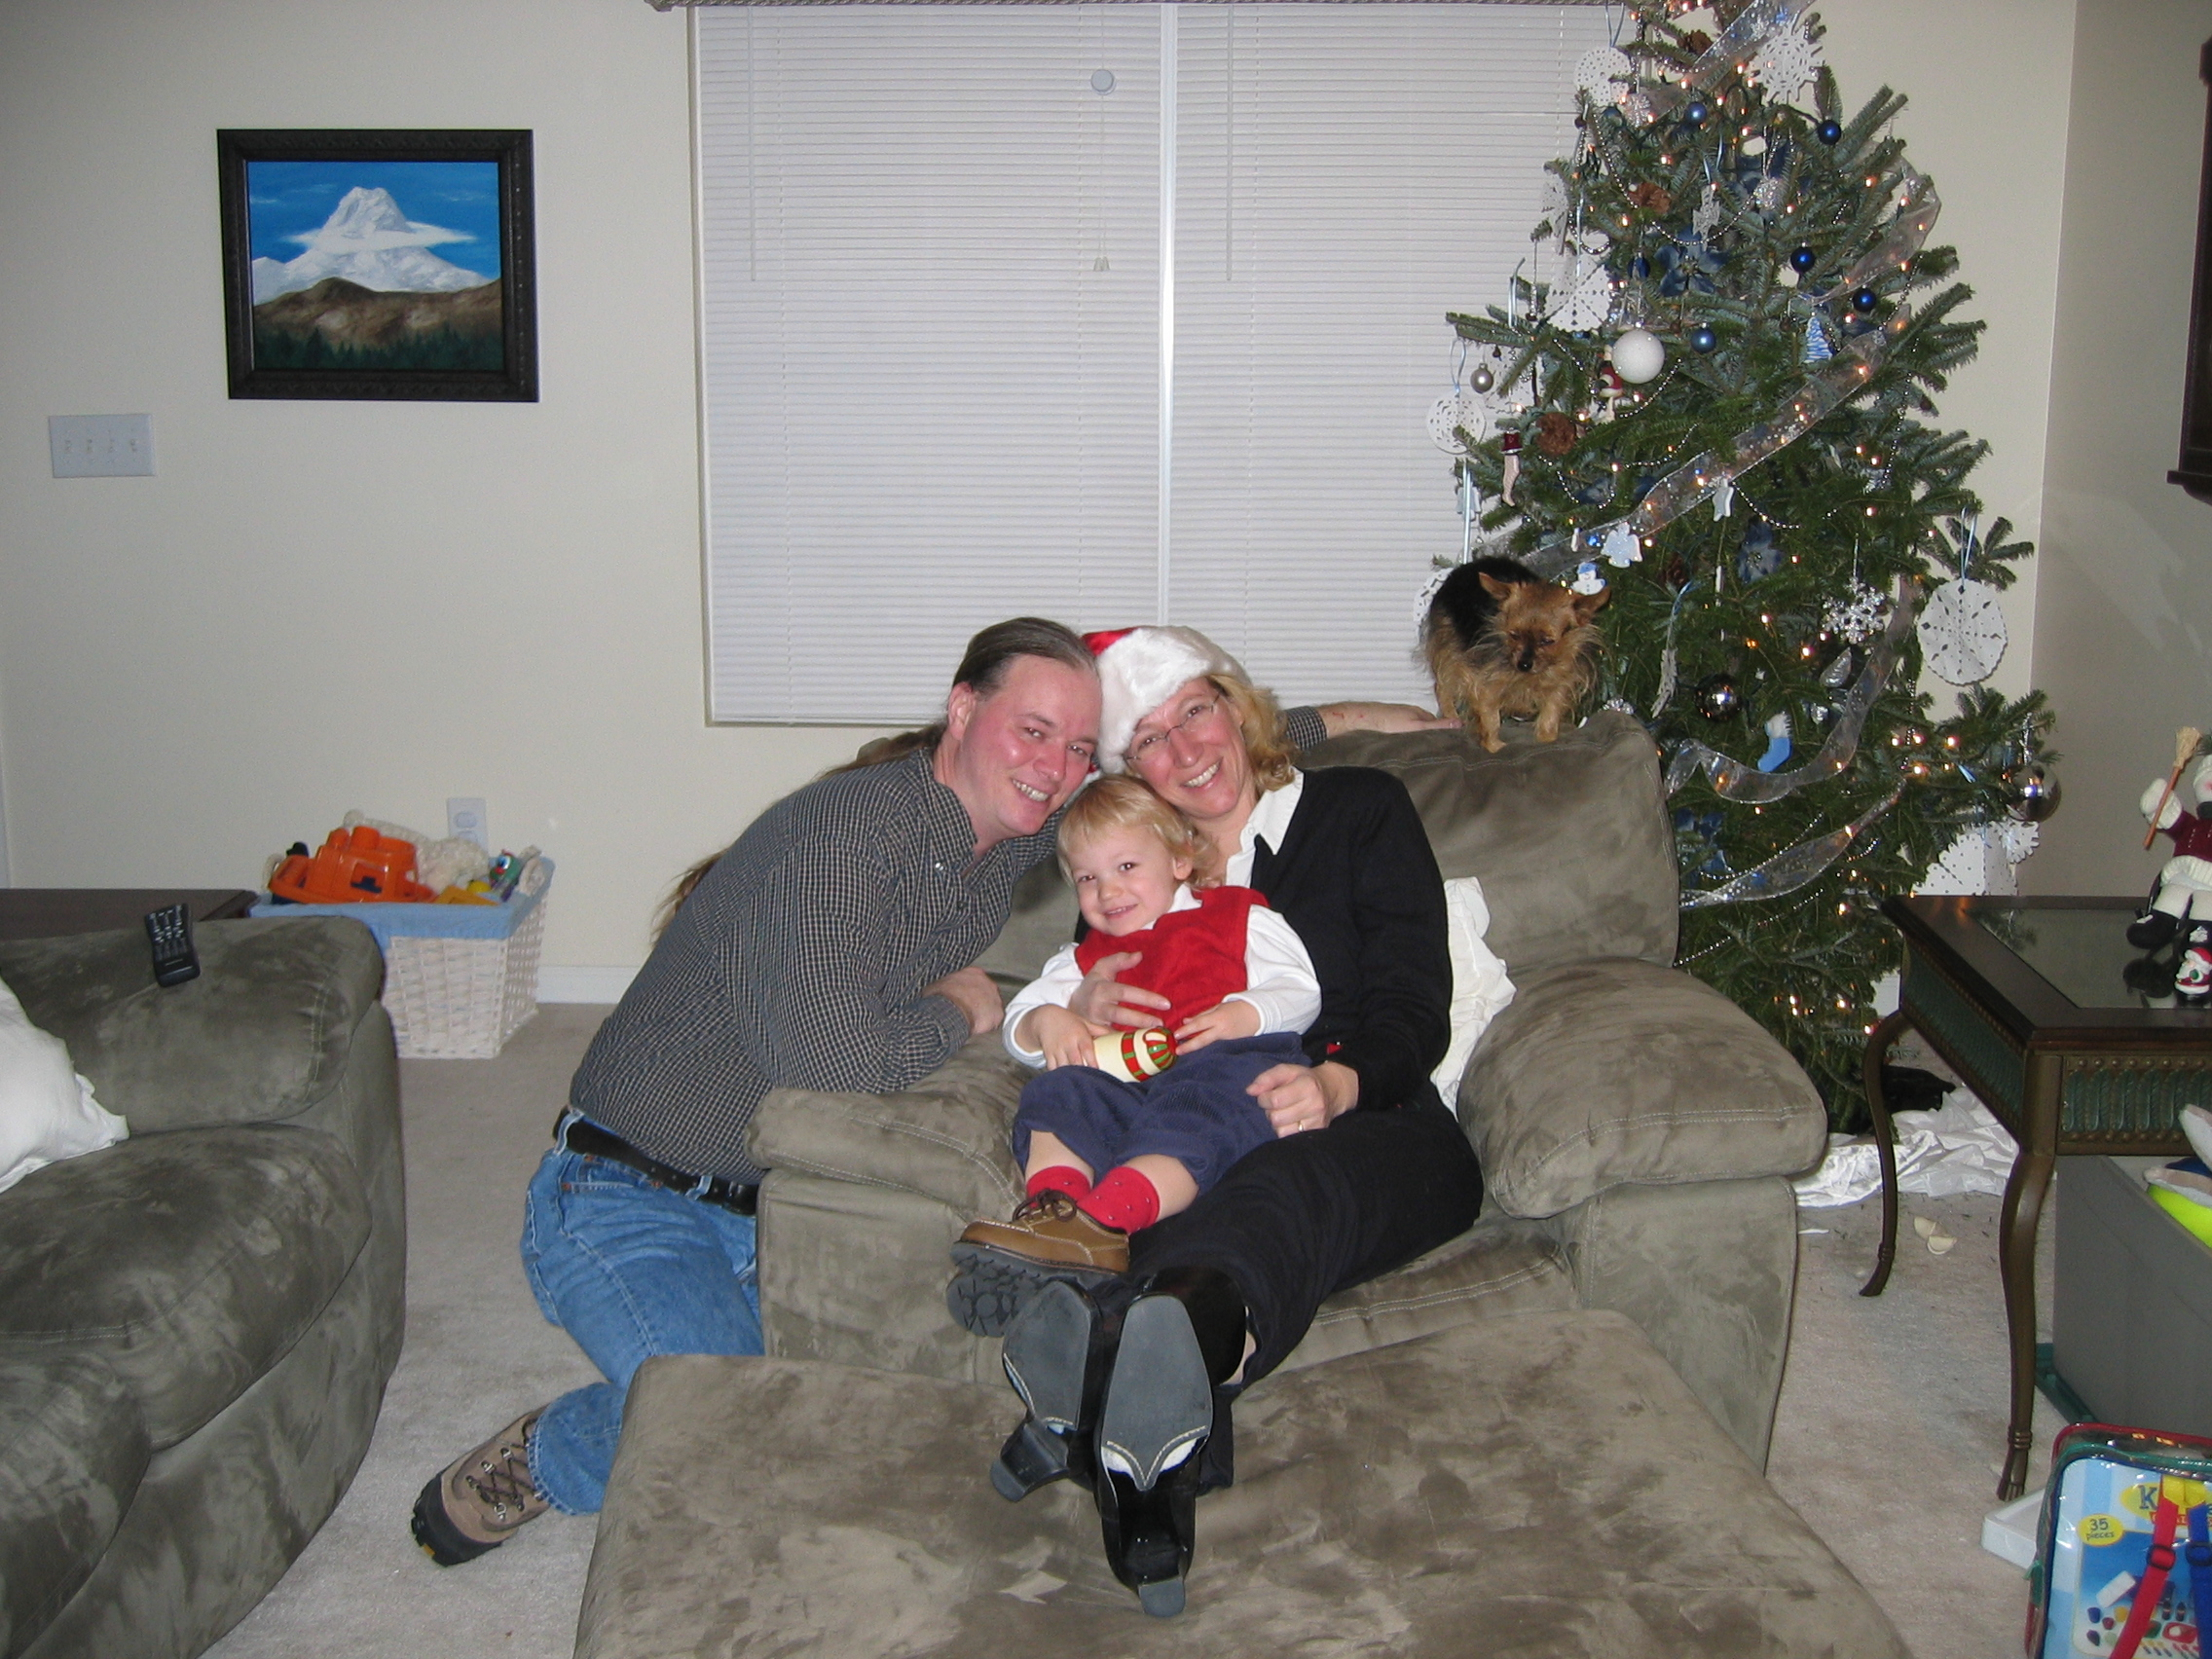 Christmas...and here's the obligatory family photo.  Well, at least that fat man in the red suit isn't scaring me now.